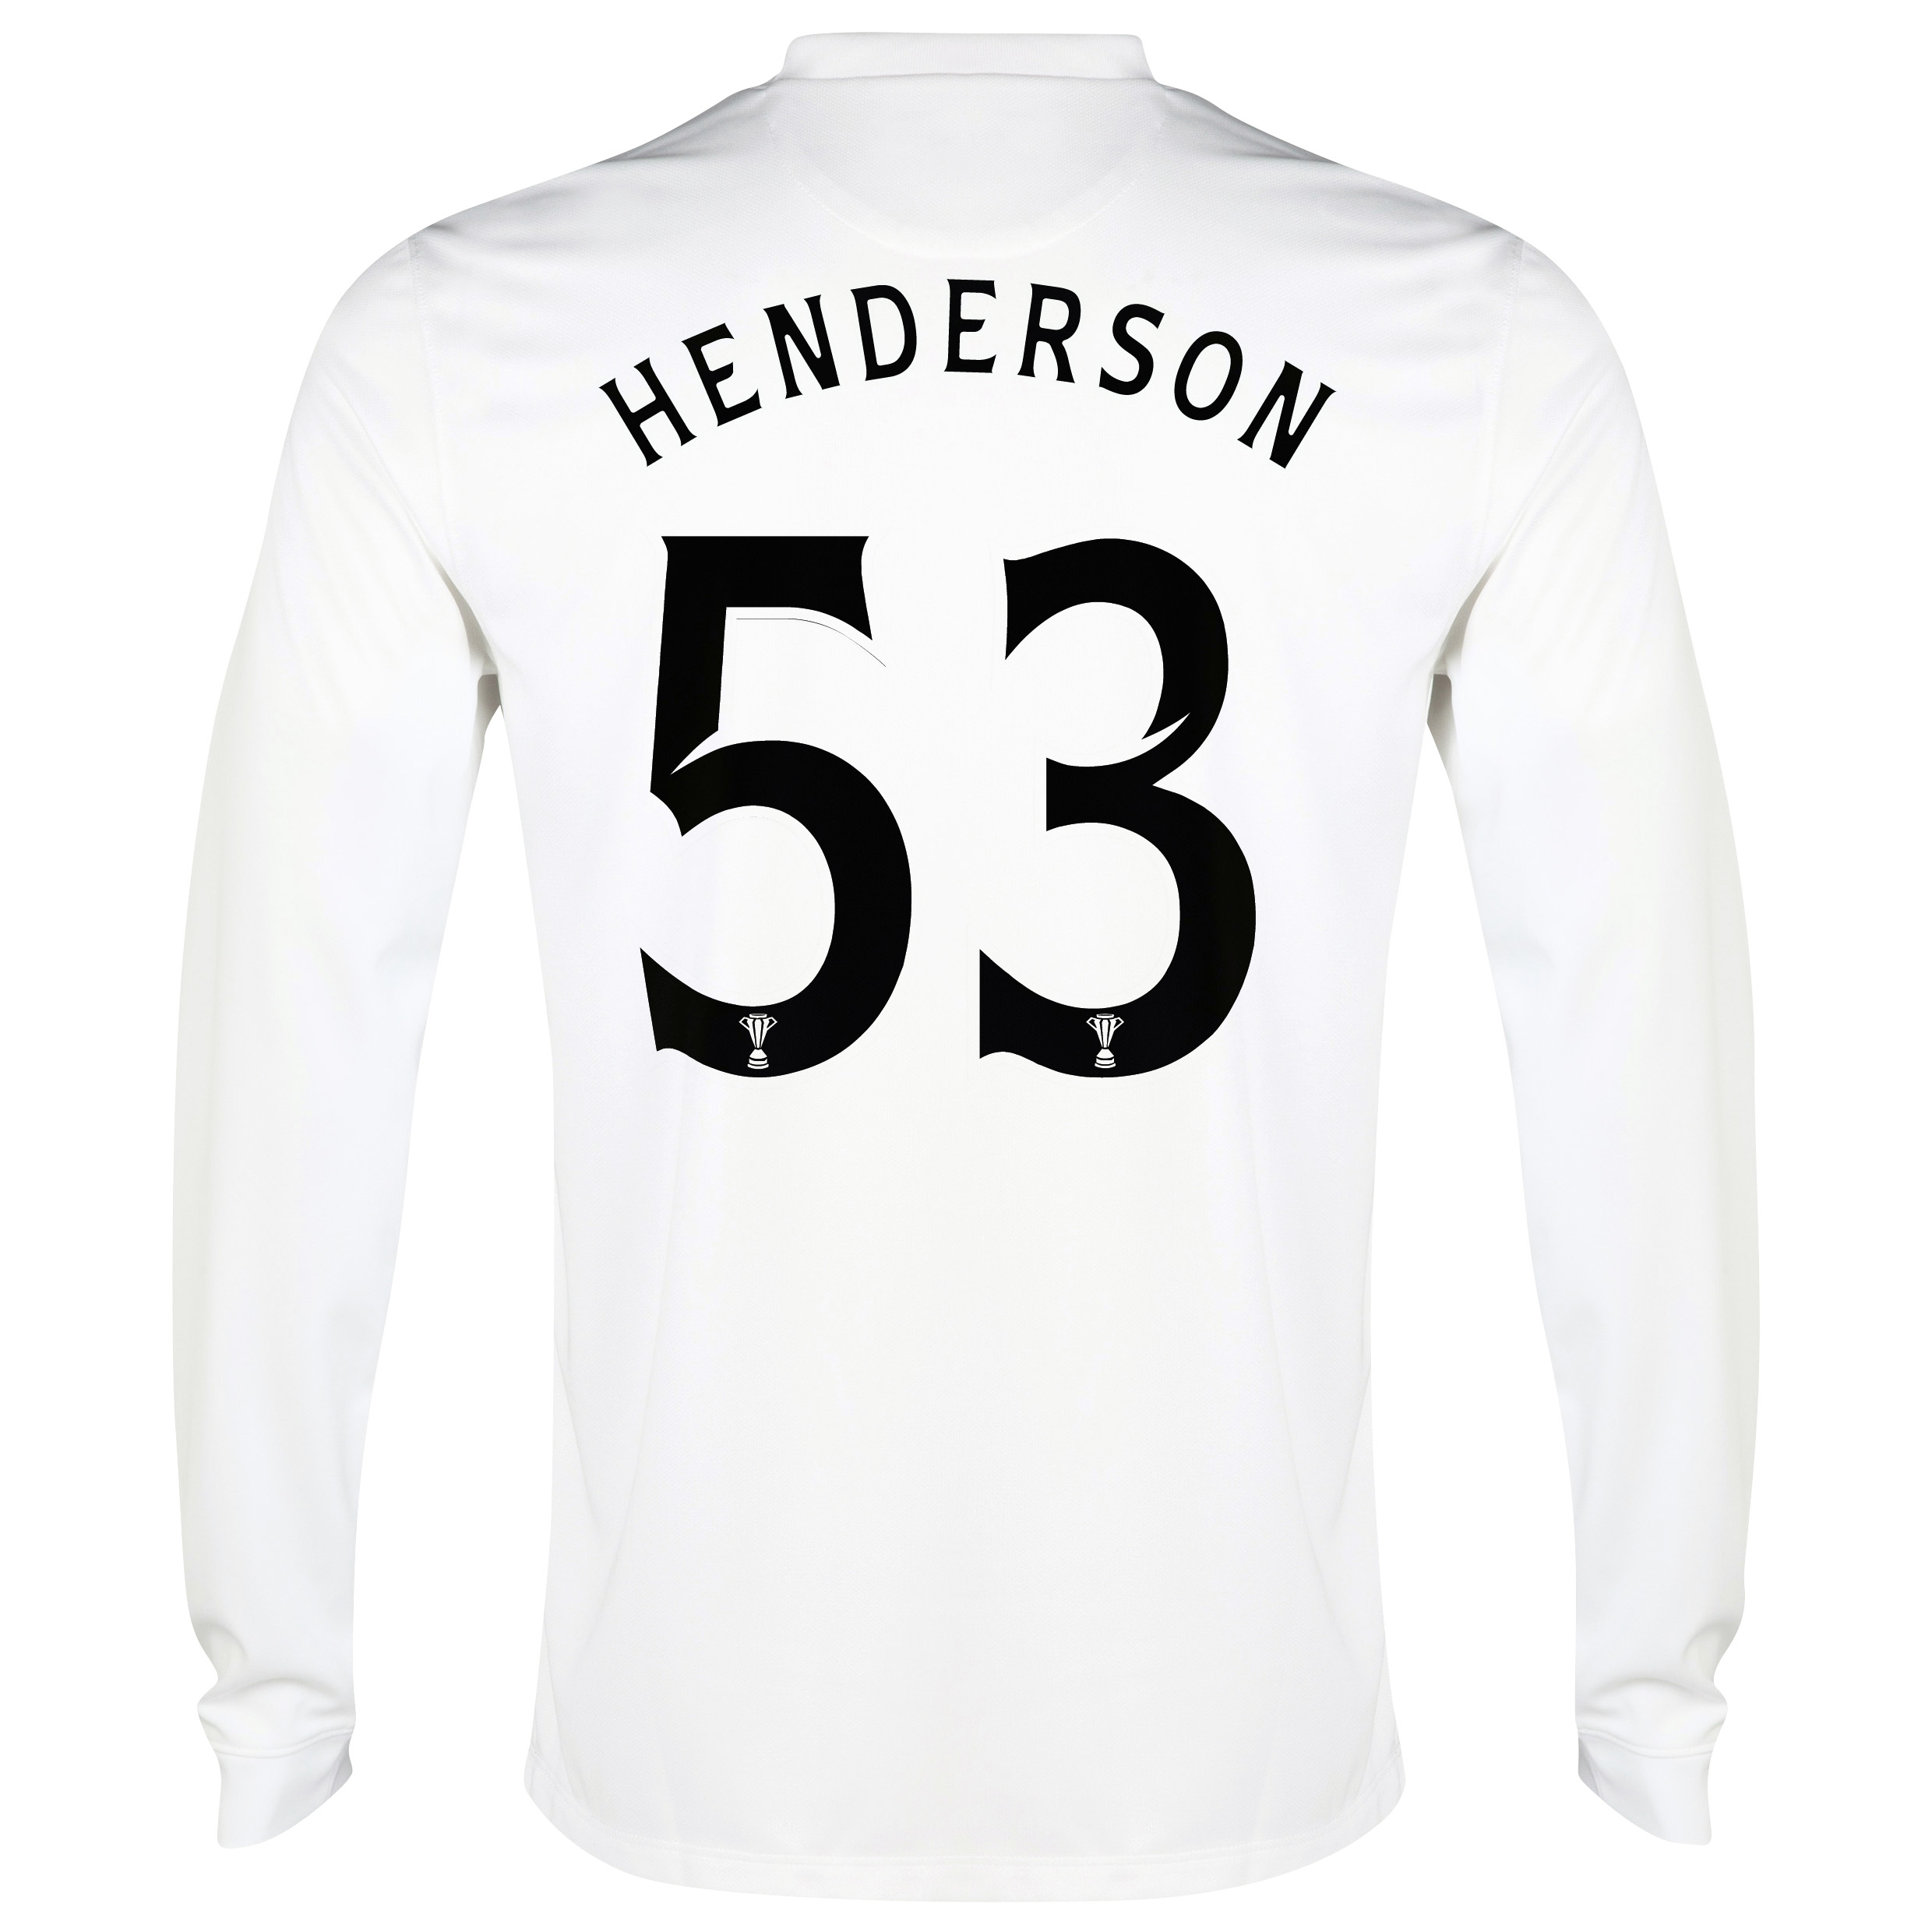 Celtic 3rd Shirt 2014/15 - Long Sleeved - Unsponsored White with Henderson 53 printing